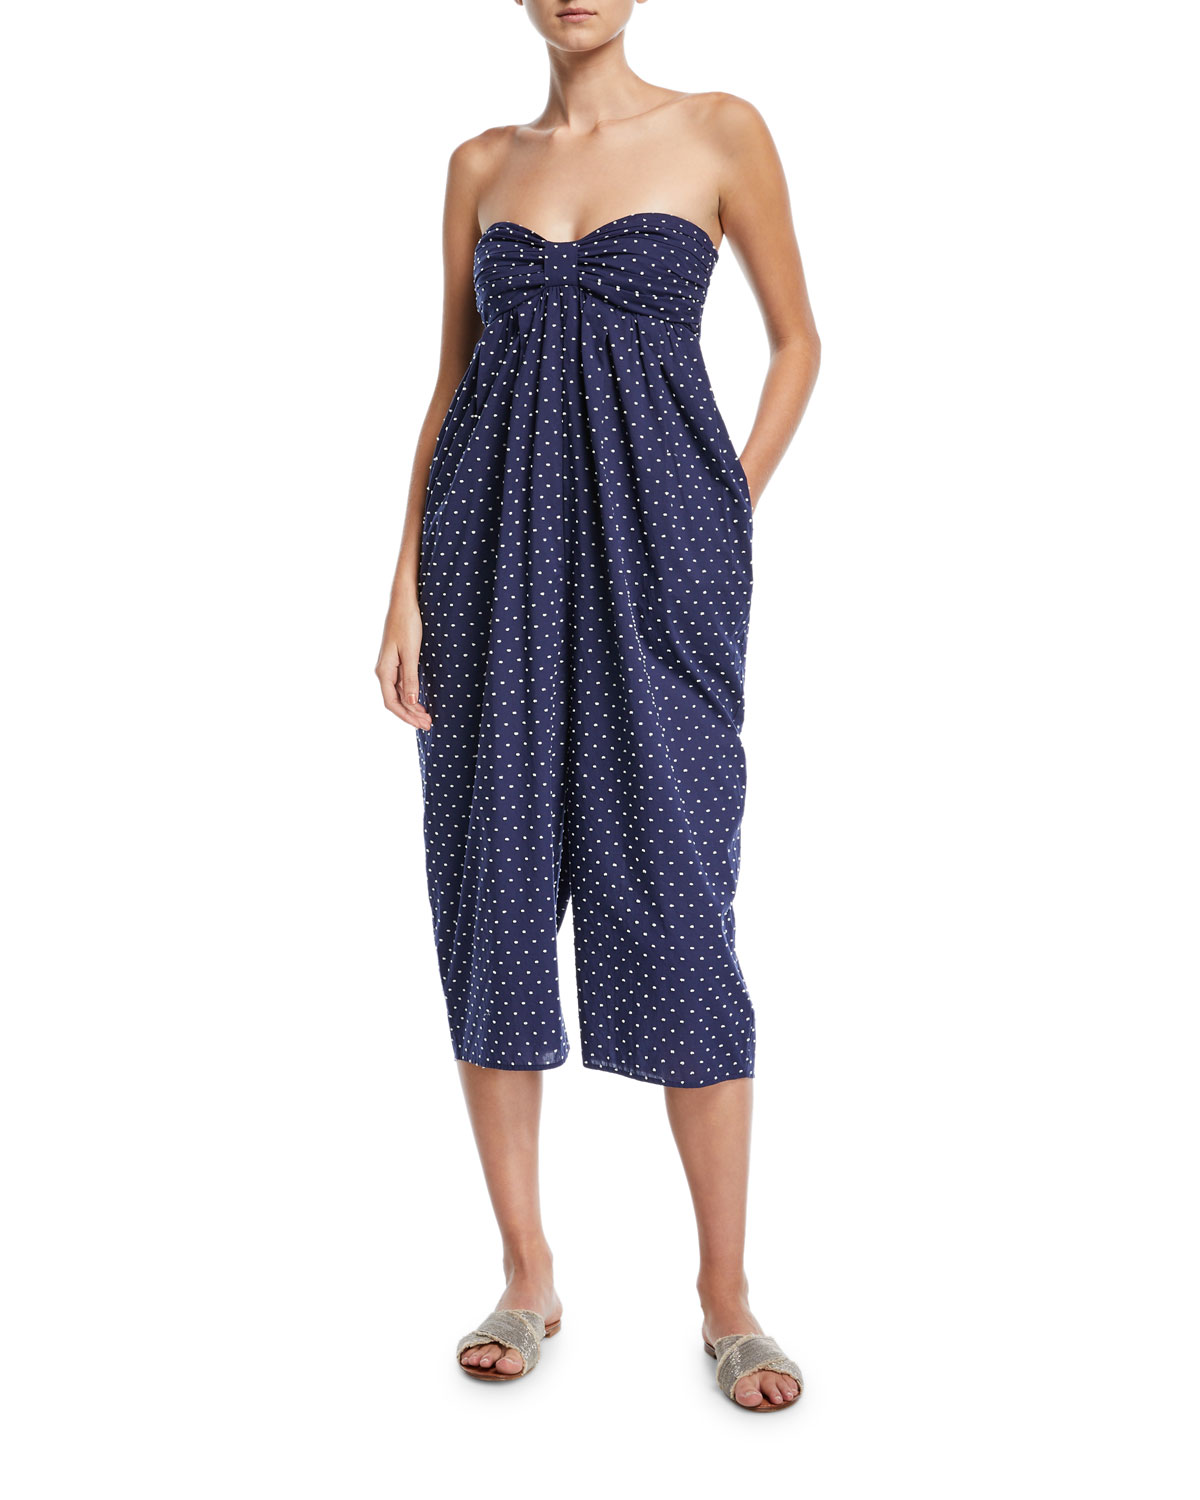 Leo Corillo Strapless Jumpsuit Coverup